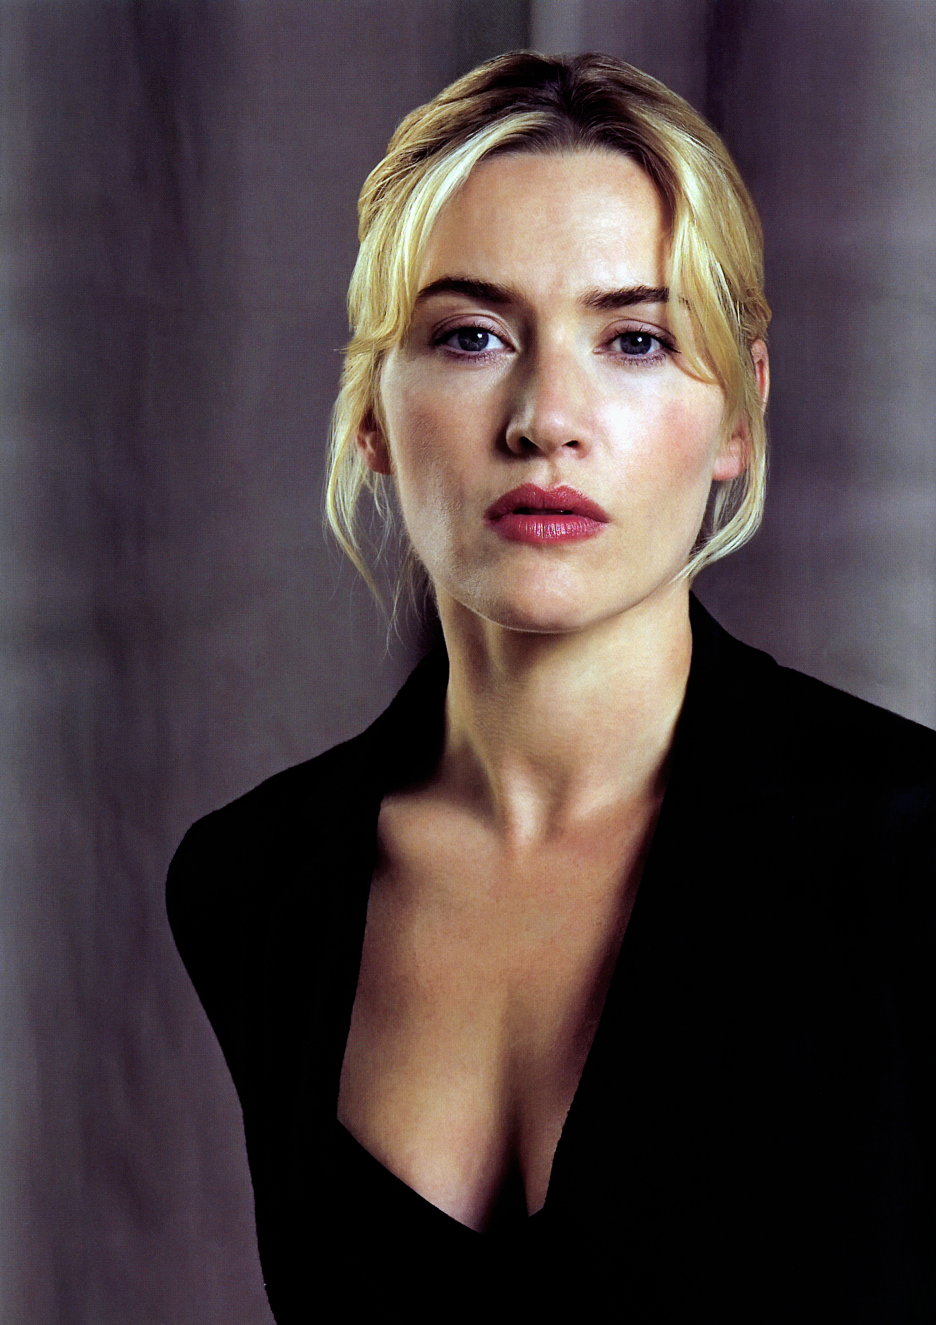 The Divergent Life: Kate Winslet in Talks to Join Divergent